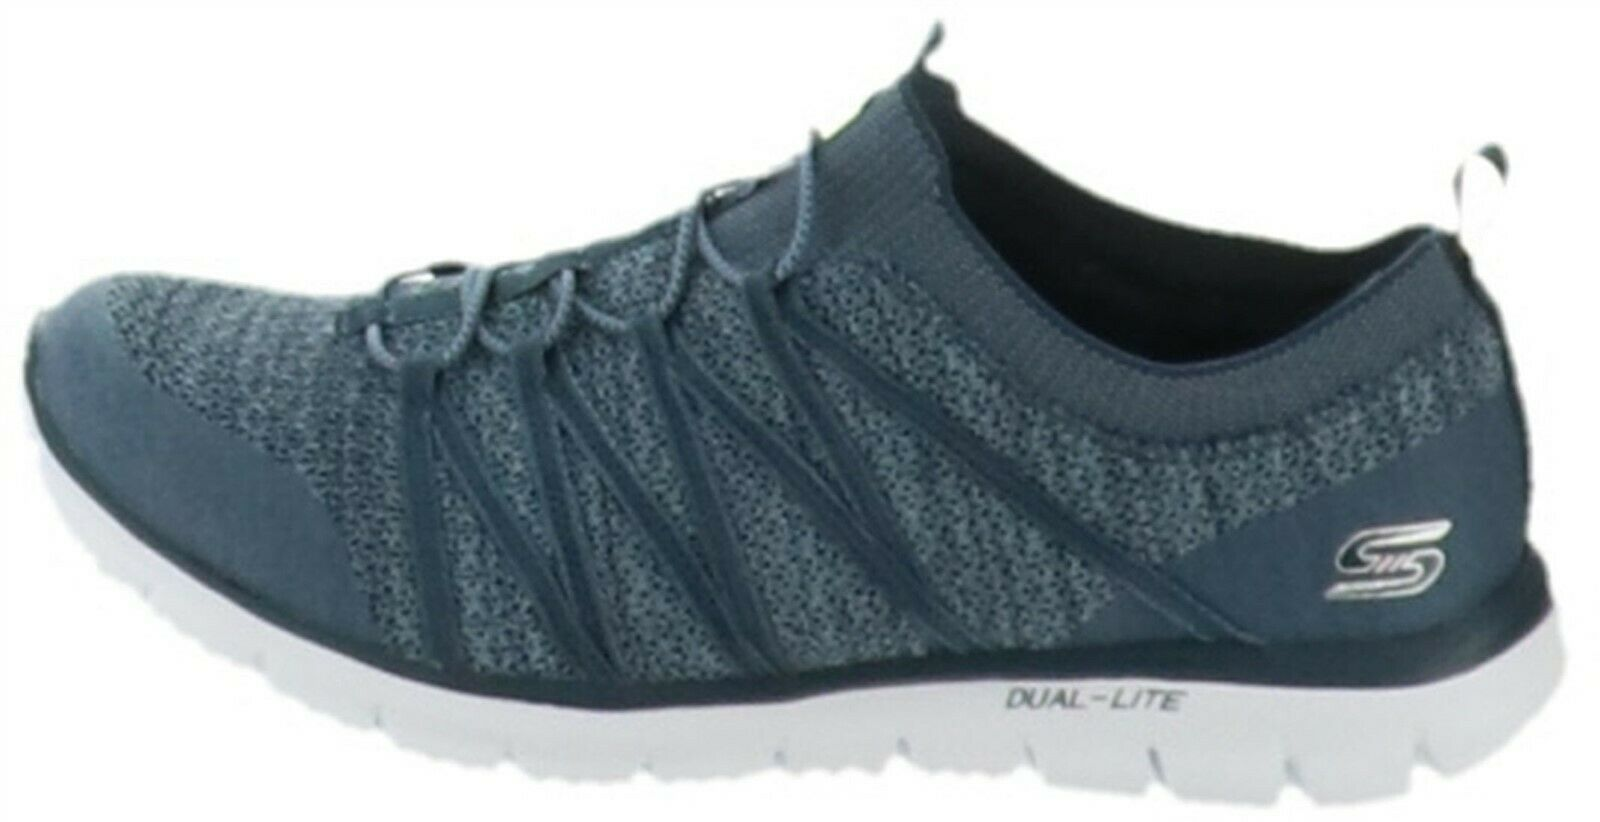 Primary image for Skechers Stretch-Knit Bungee Slip-On Sneakers Glider Tuneful Navy 10M NEW A34659